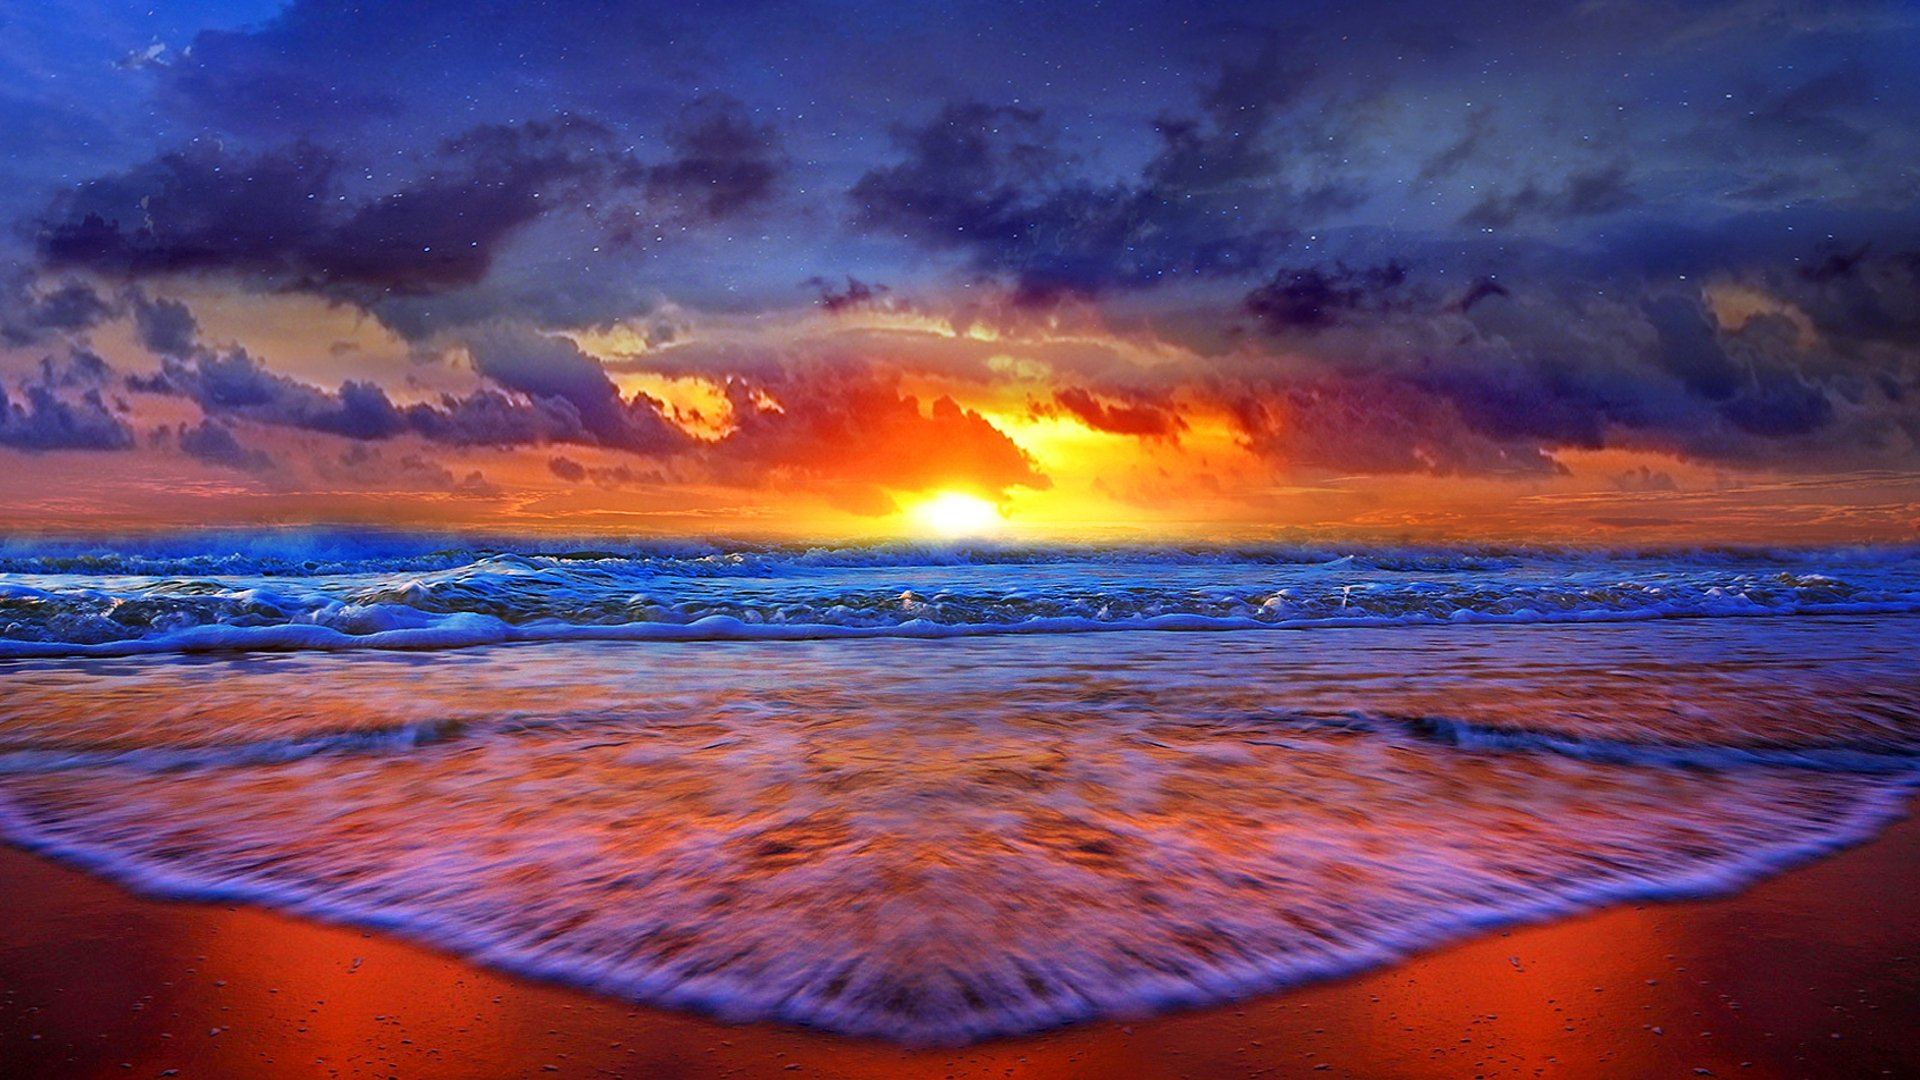 Desktop Backgrounds Beach Sunset   wallpaper 1920x1080